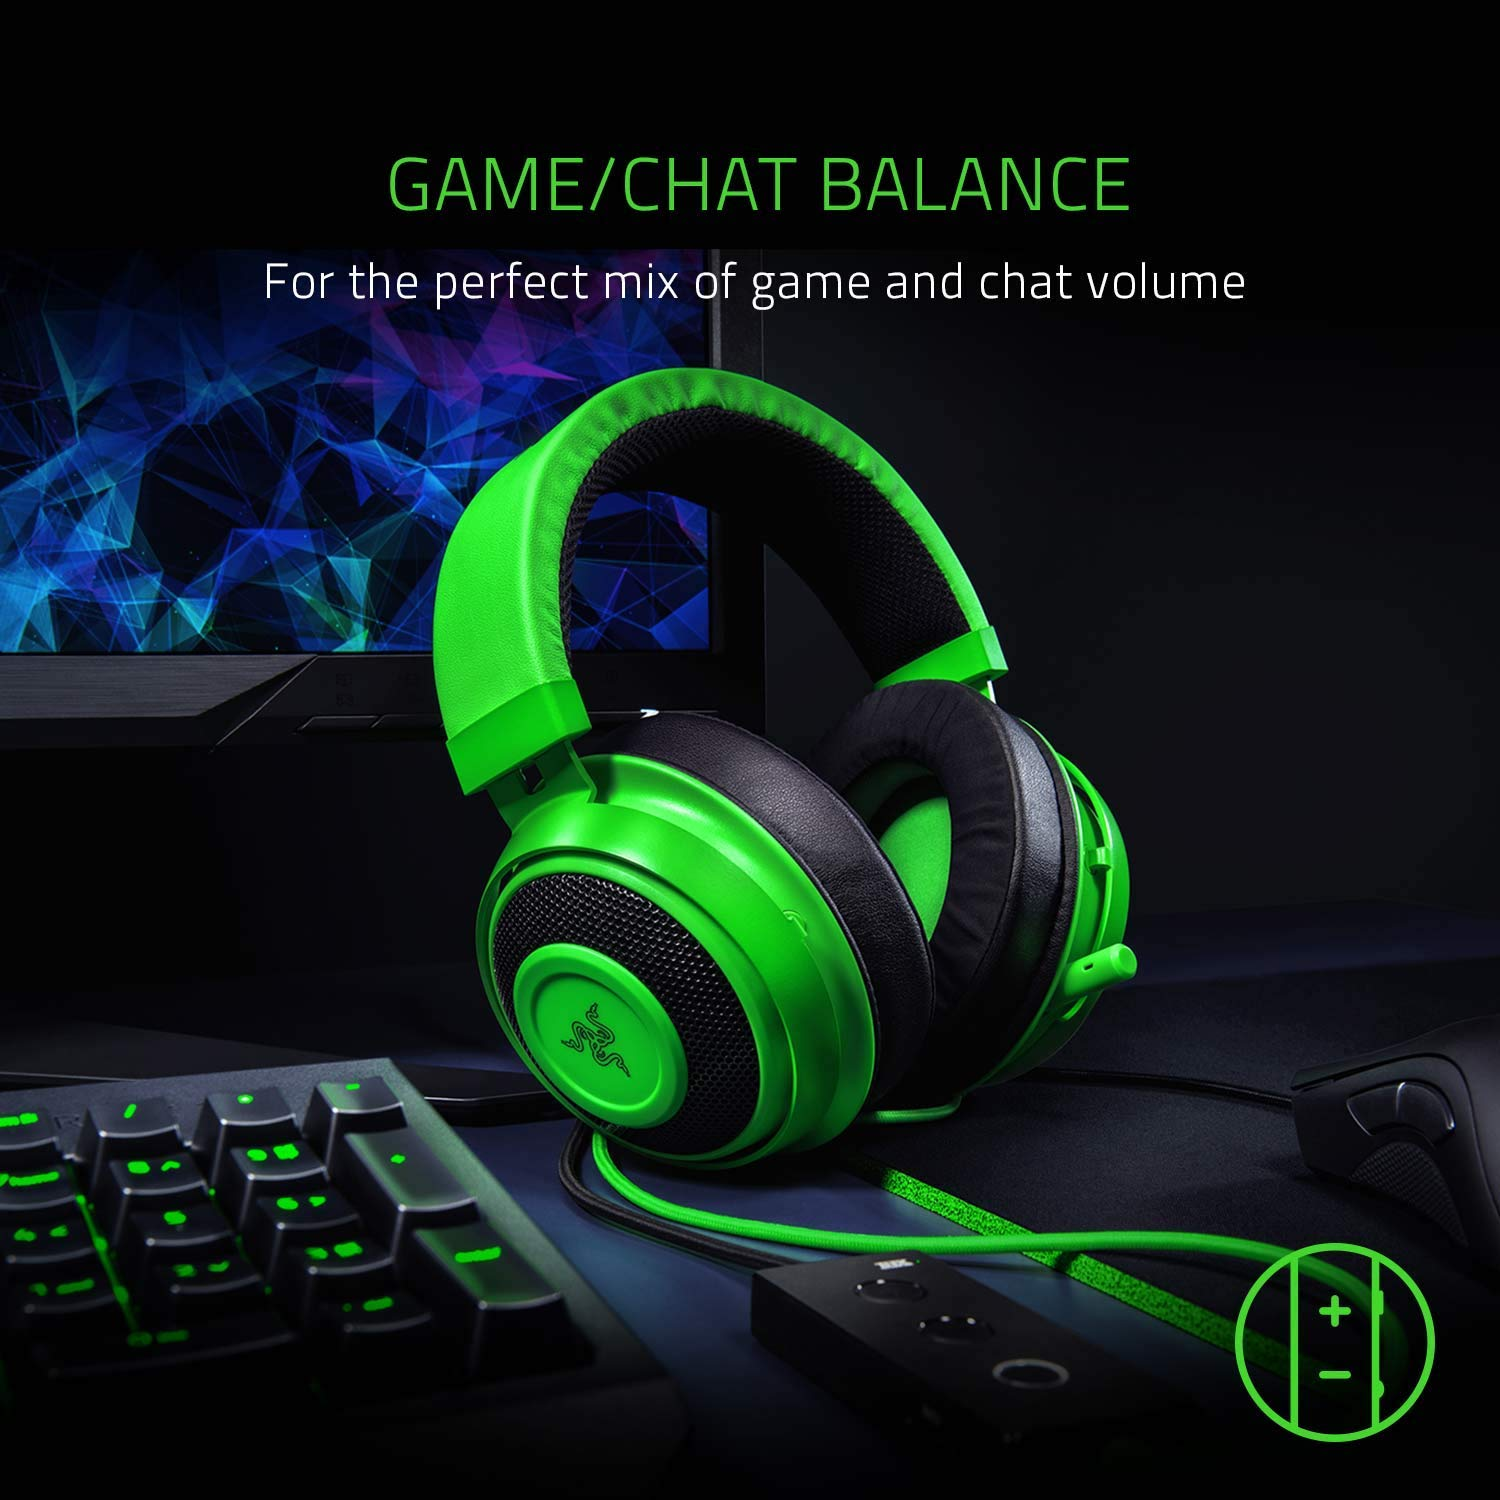 Razer Kraken Tournament Edition: THX Spatial Audio - Full Audio Control -  Cooling Gel-Infused Ear Cushions